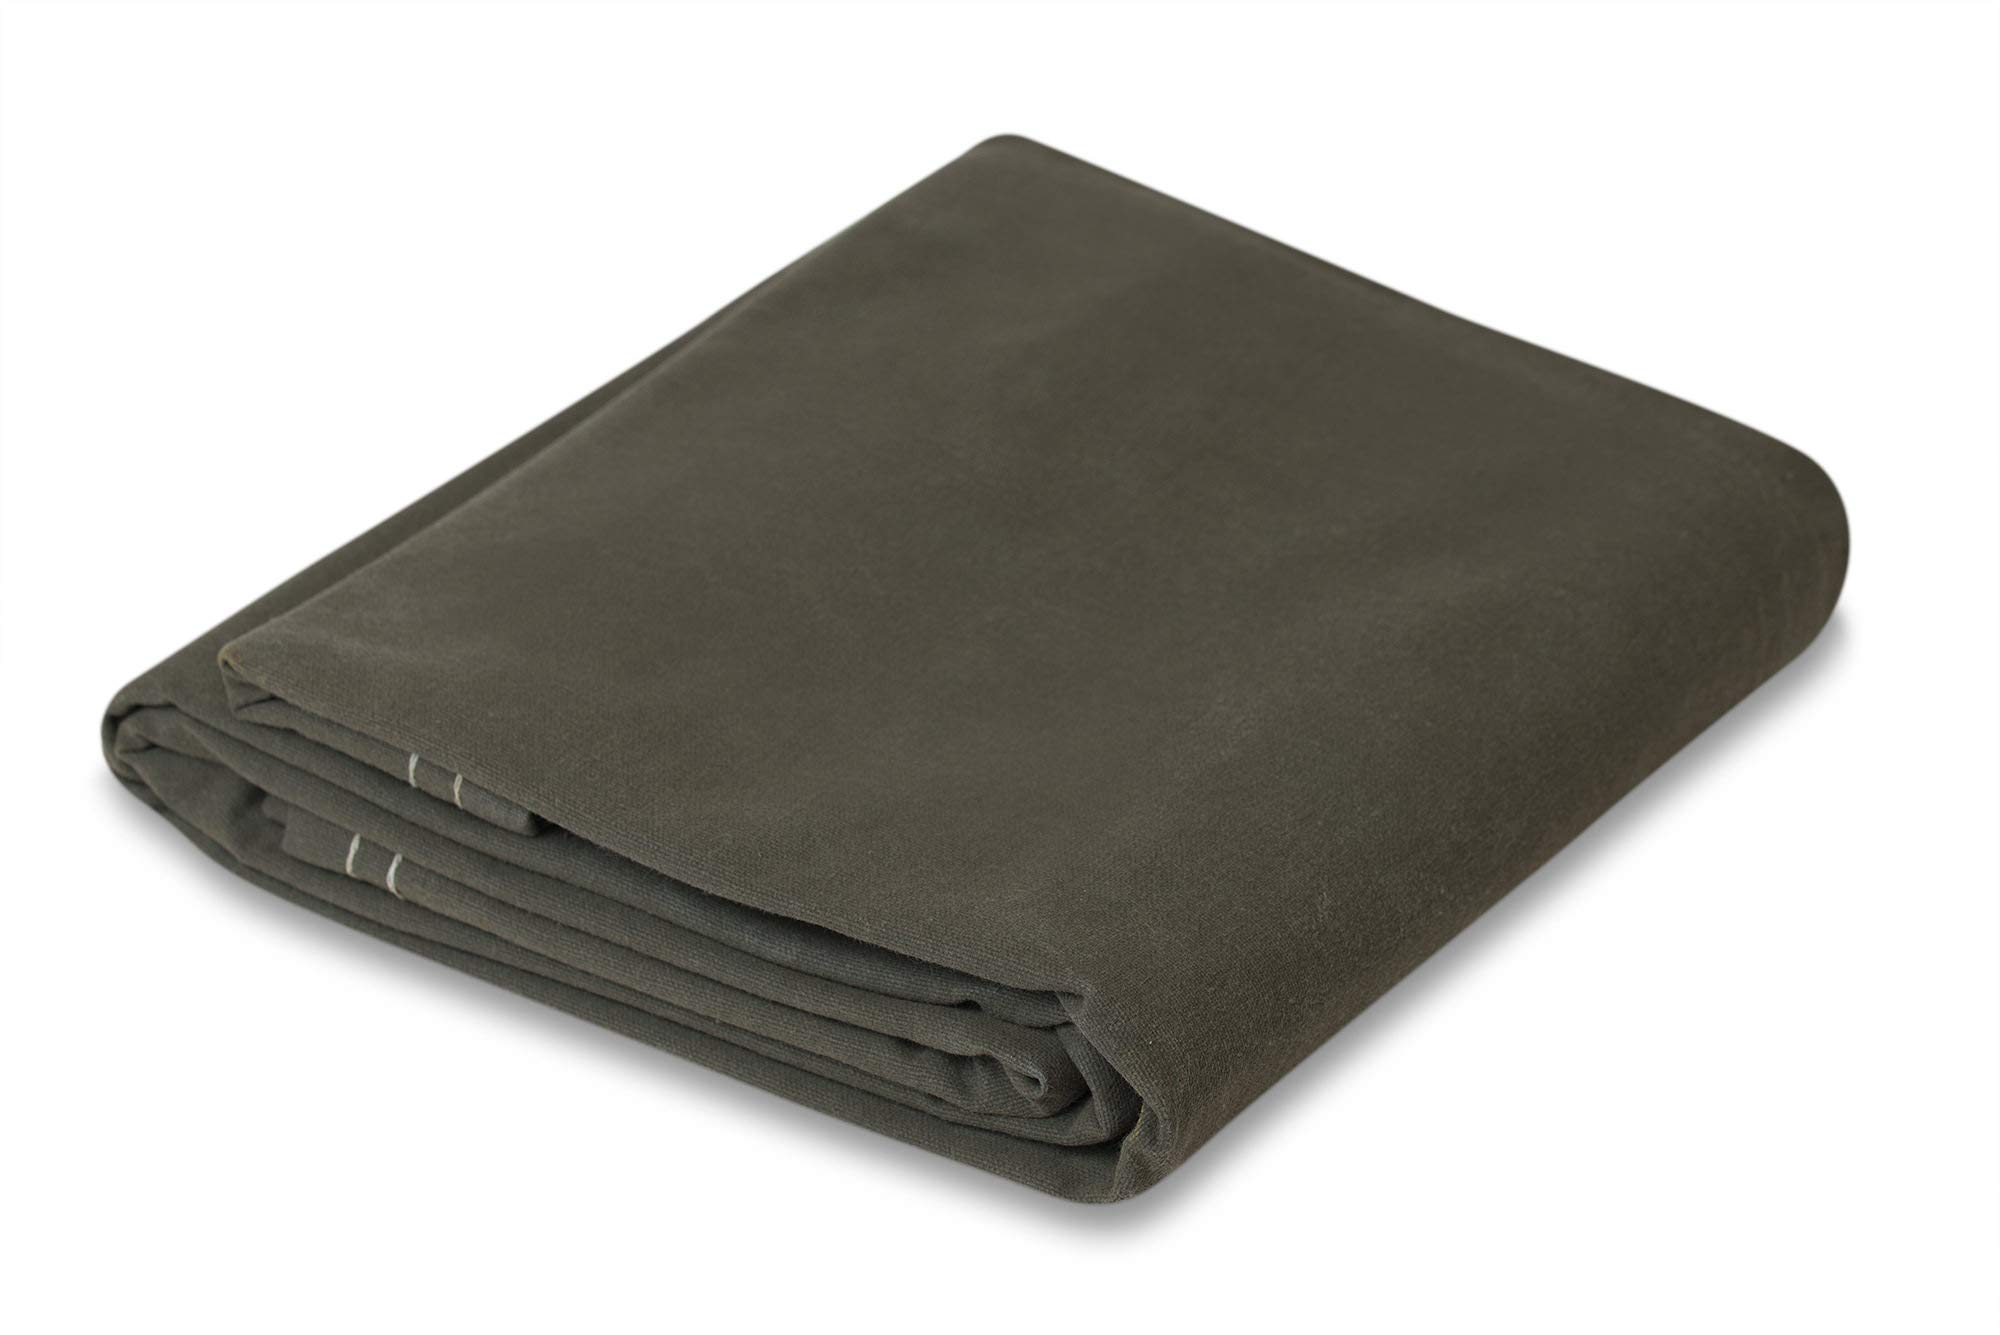 8' x 10' Olive Drab 21 oz Canvas Tarpaulin by CCS CHICAGO CANVAS & SUPPLY